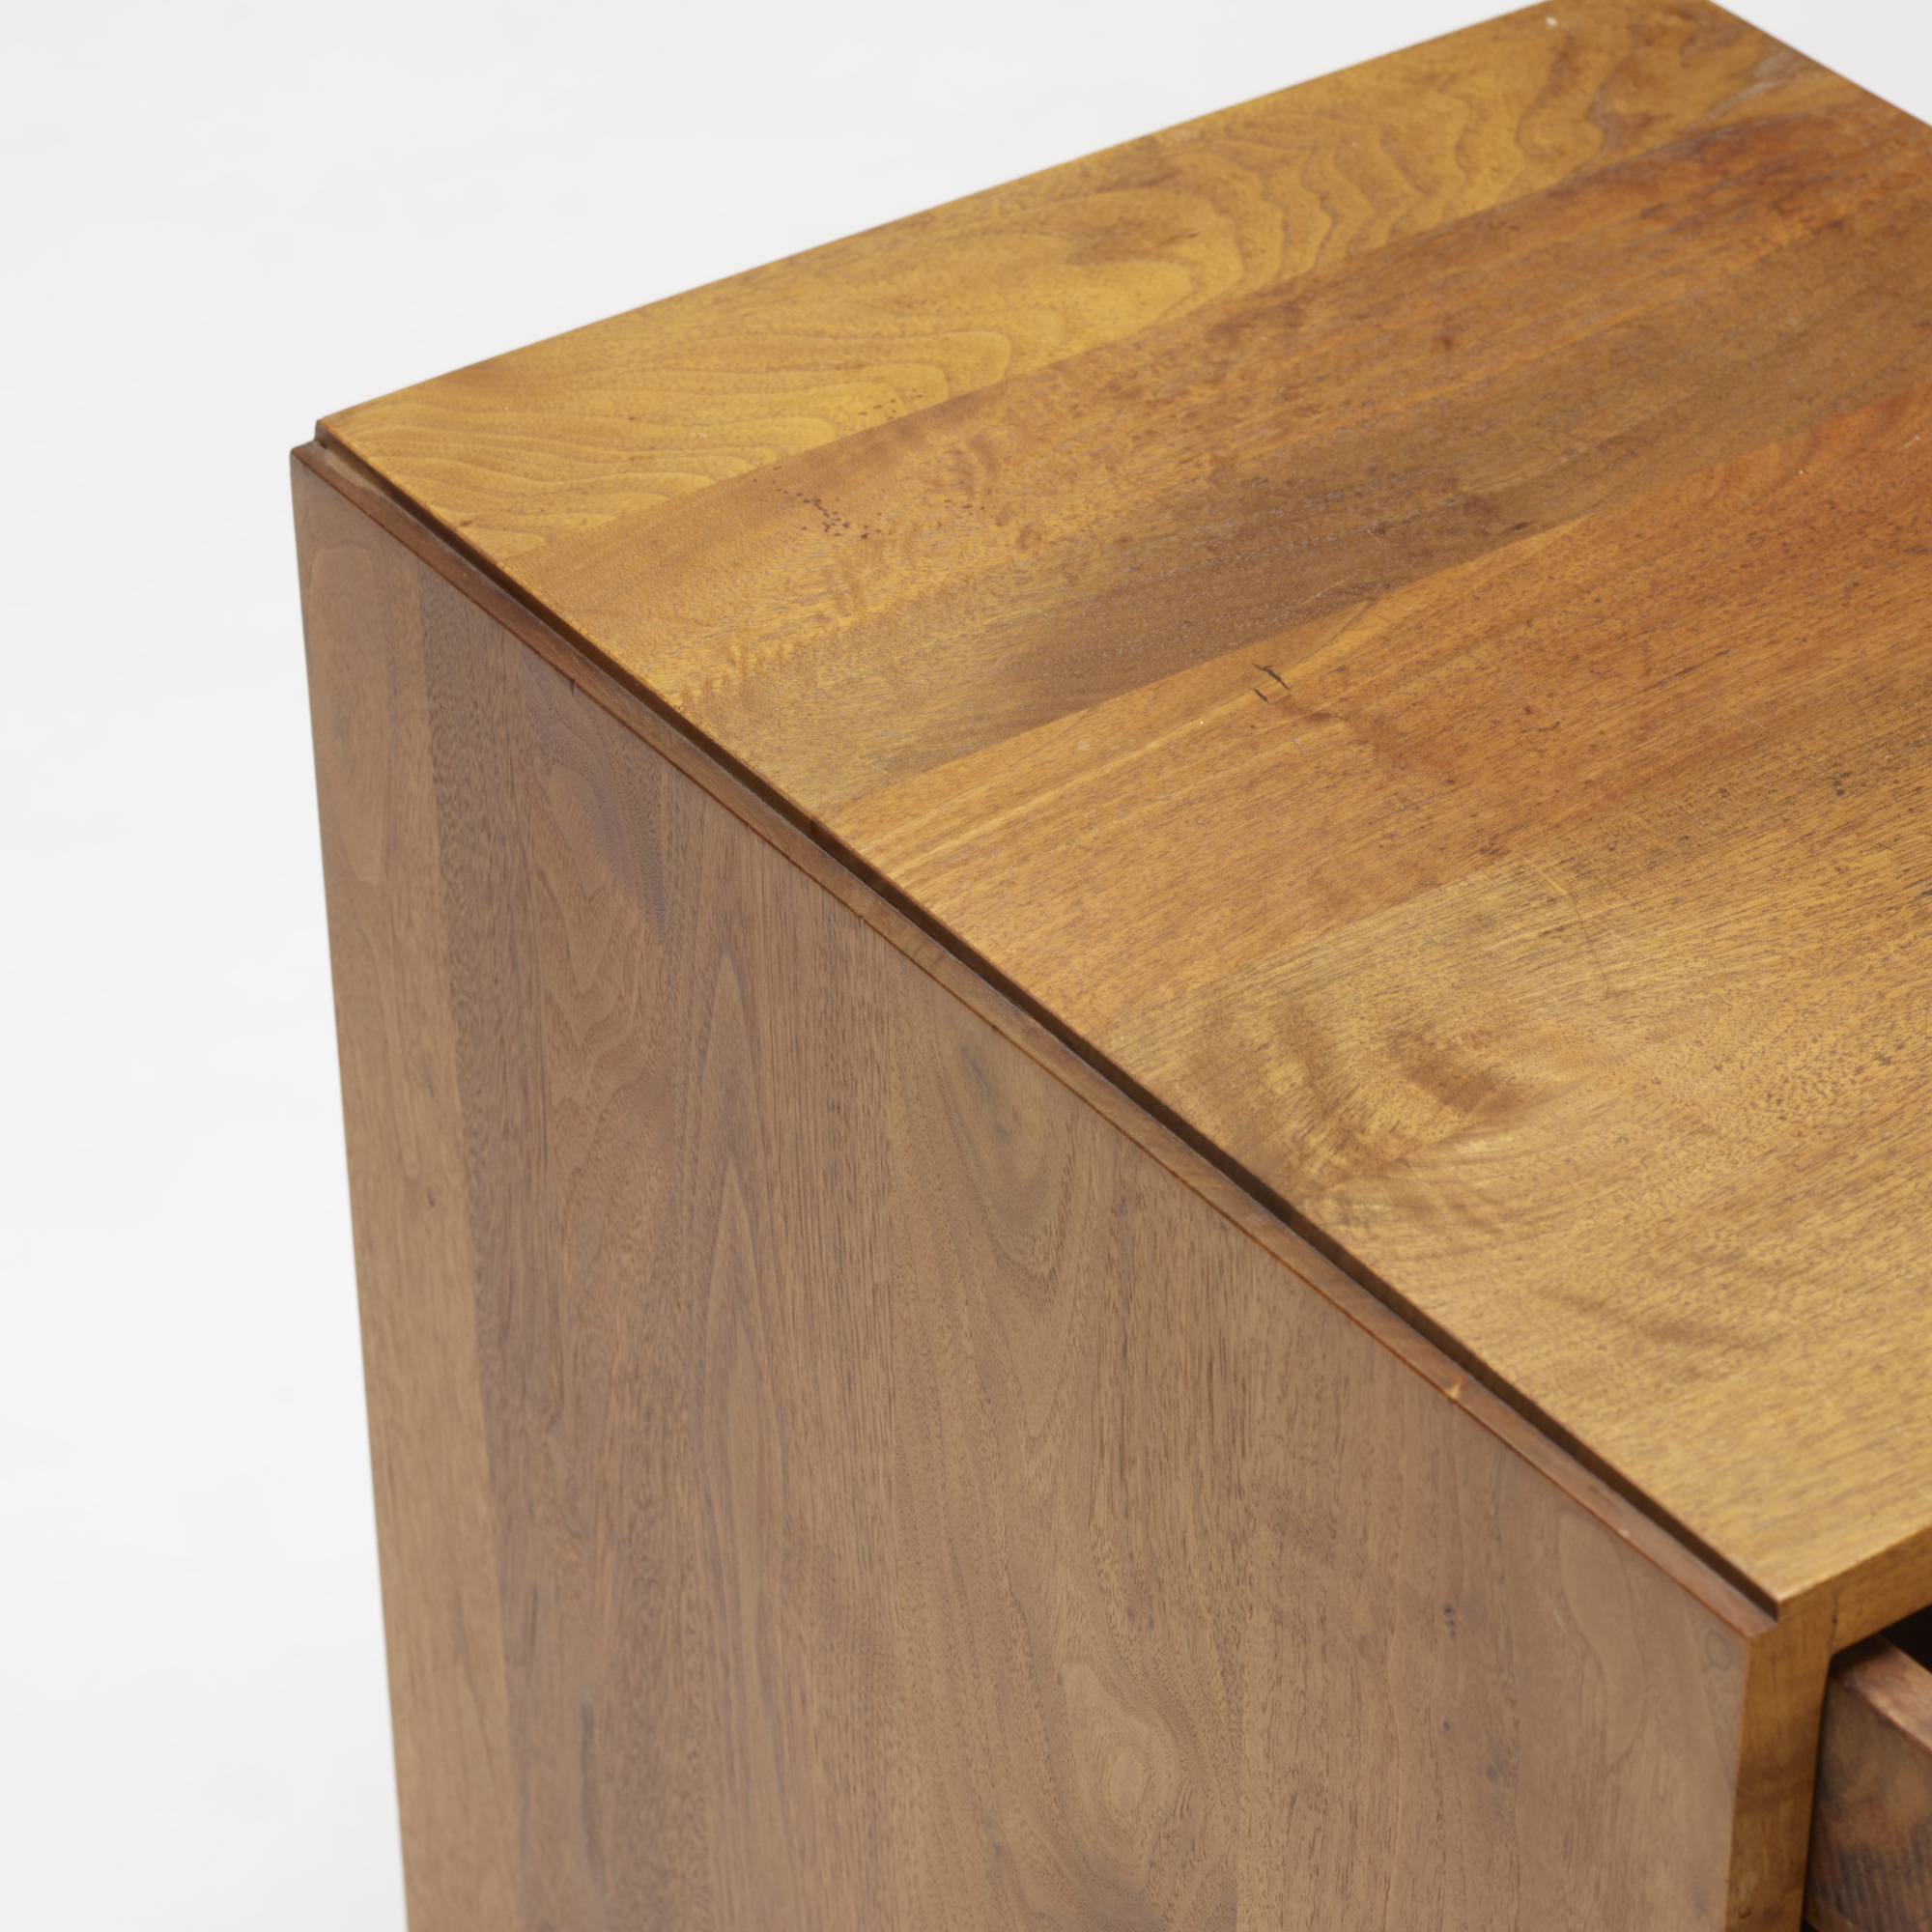 112: George Nakashima / nightstand (3 of 3)